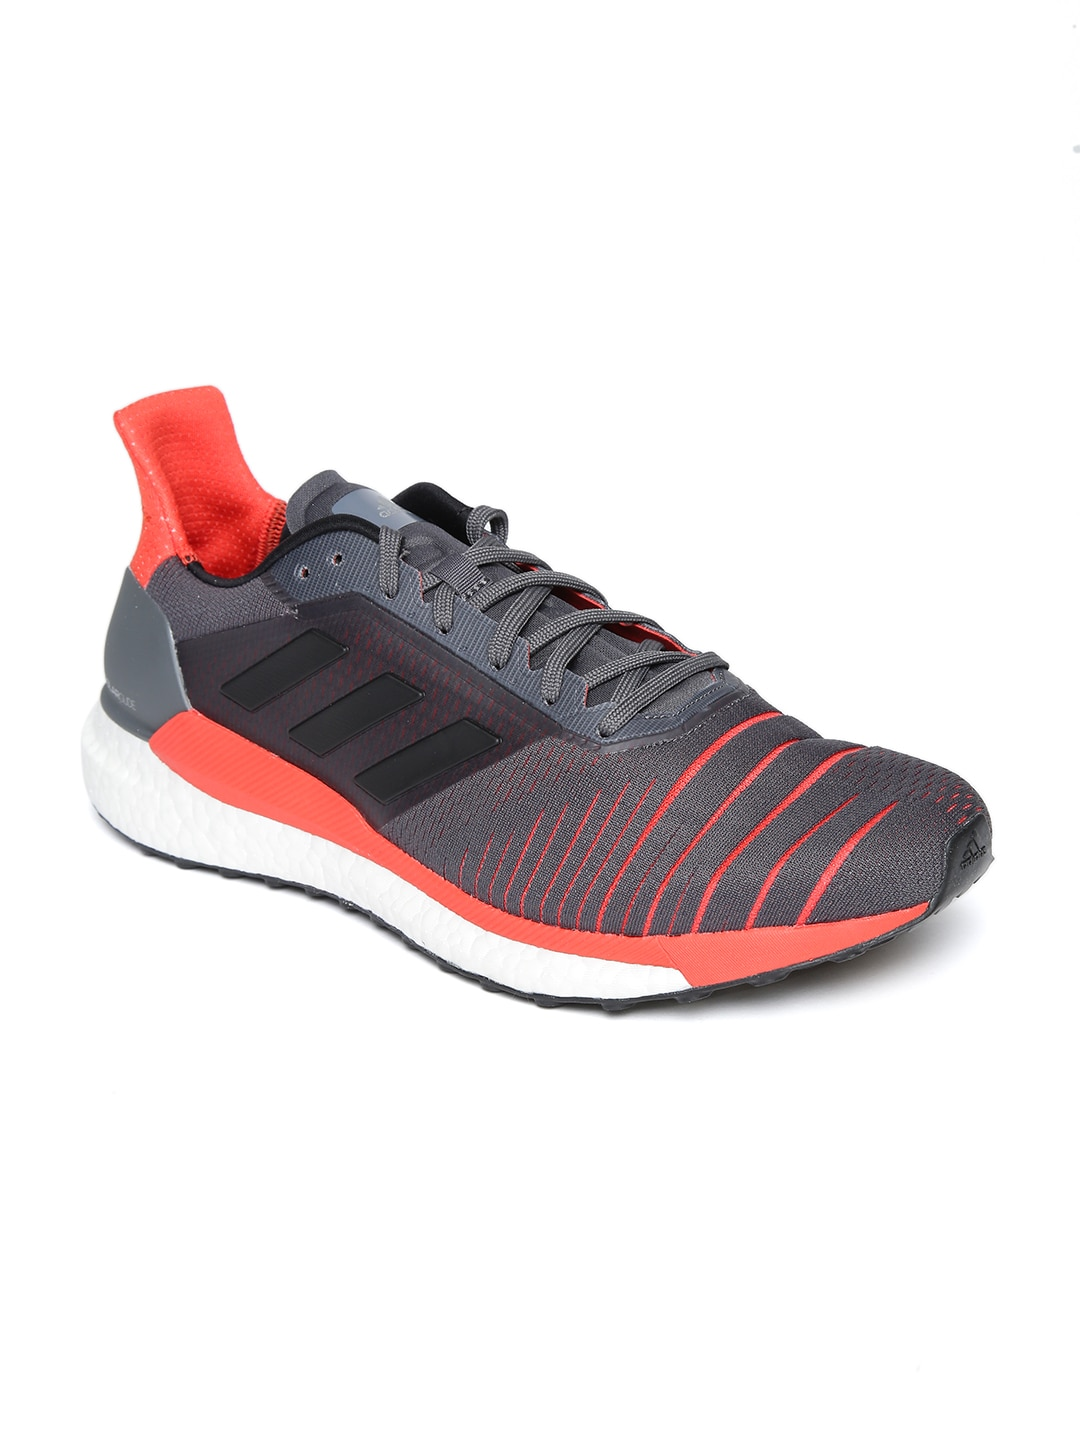 feed37d49dad Sales Sports Shoes - Buy Sales Sports Shoes online in India